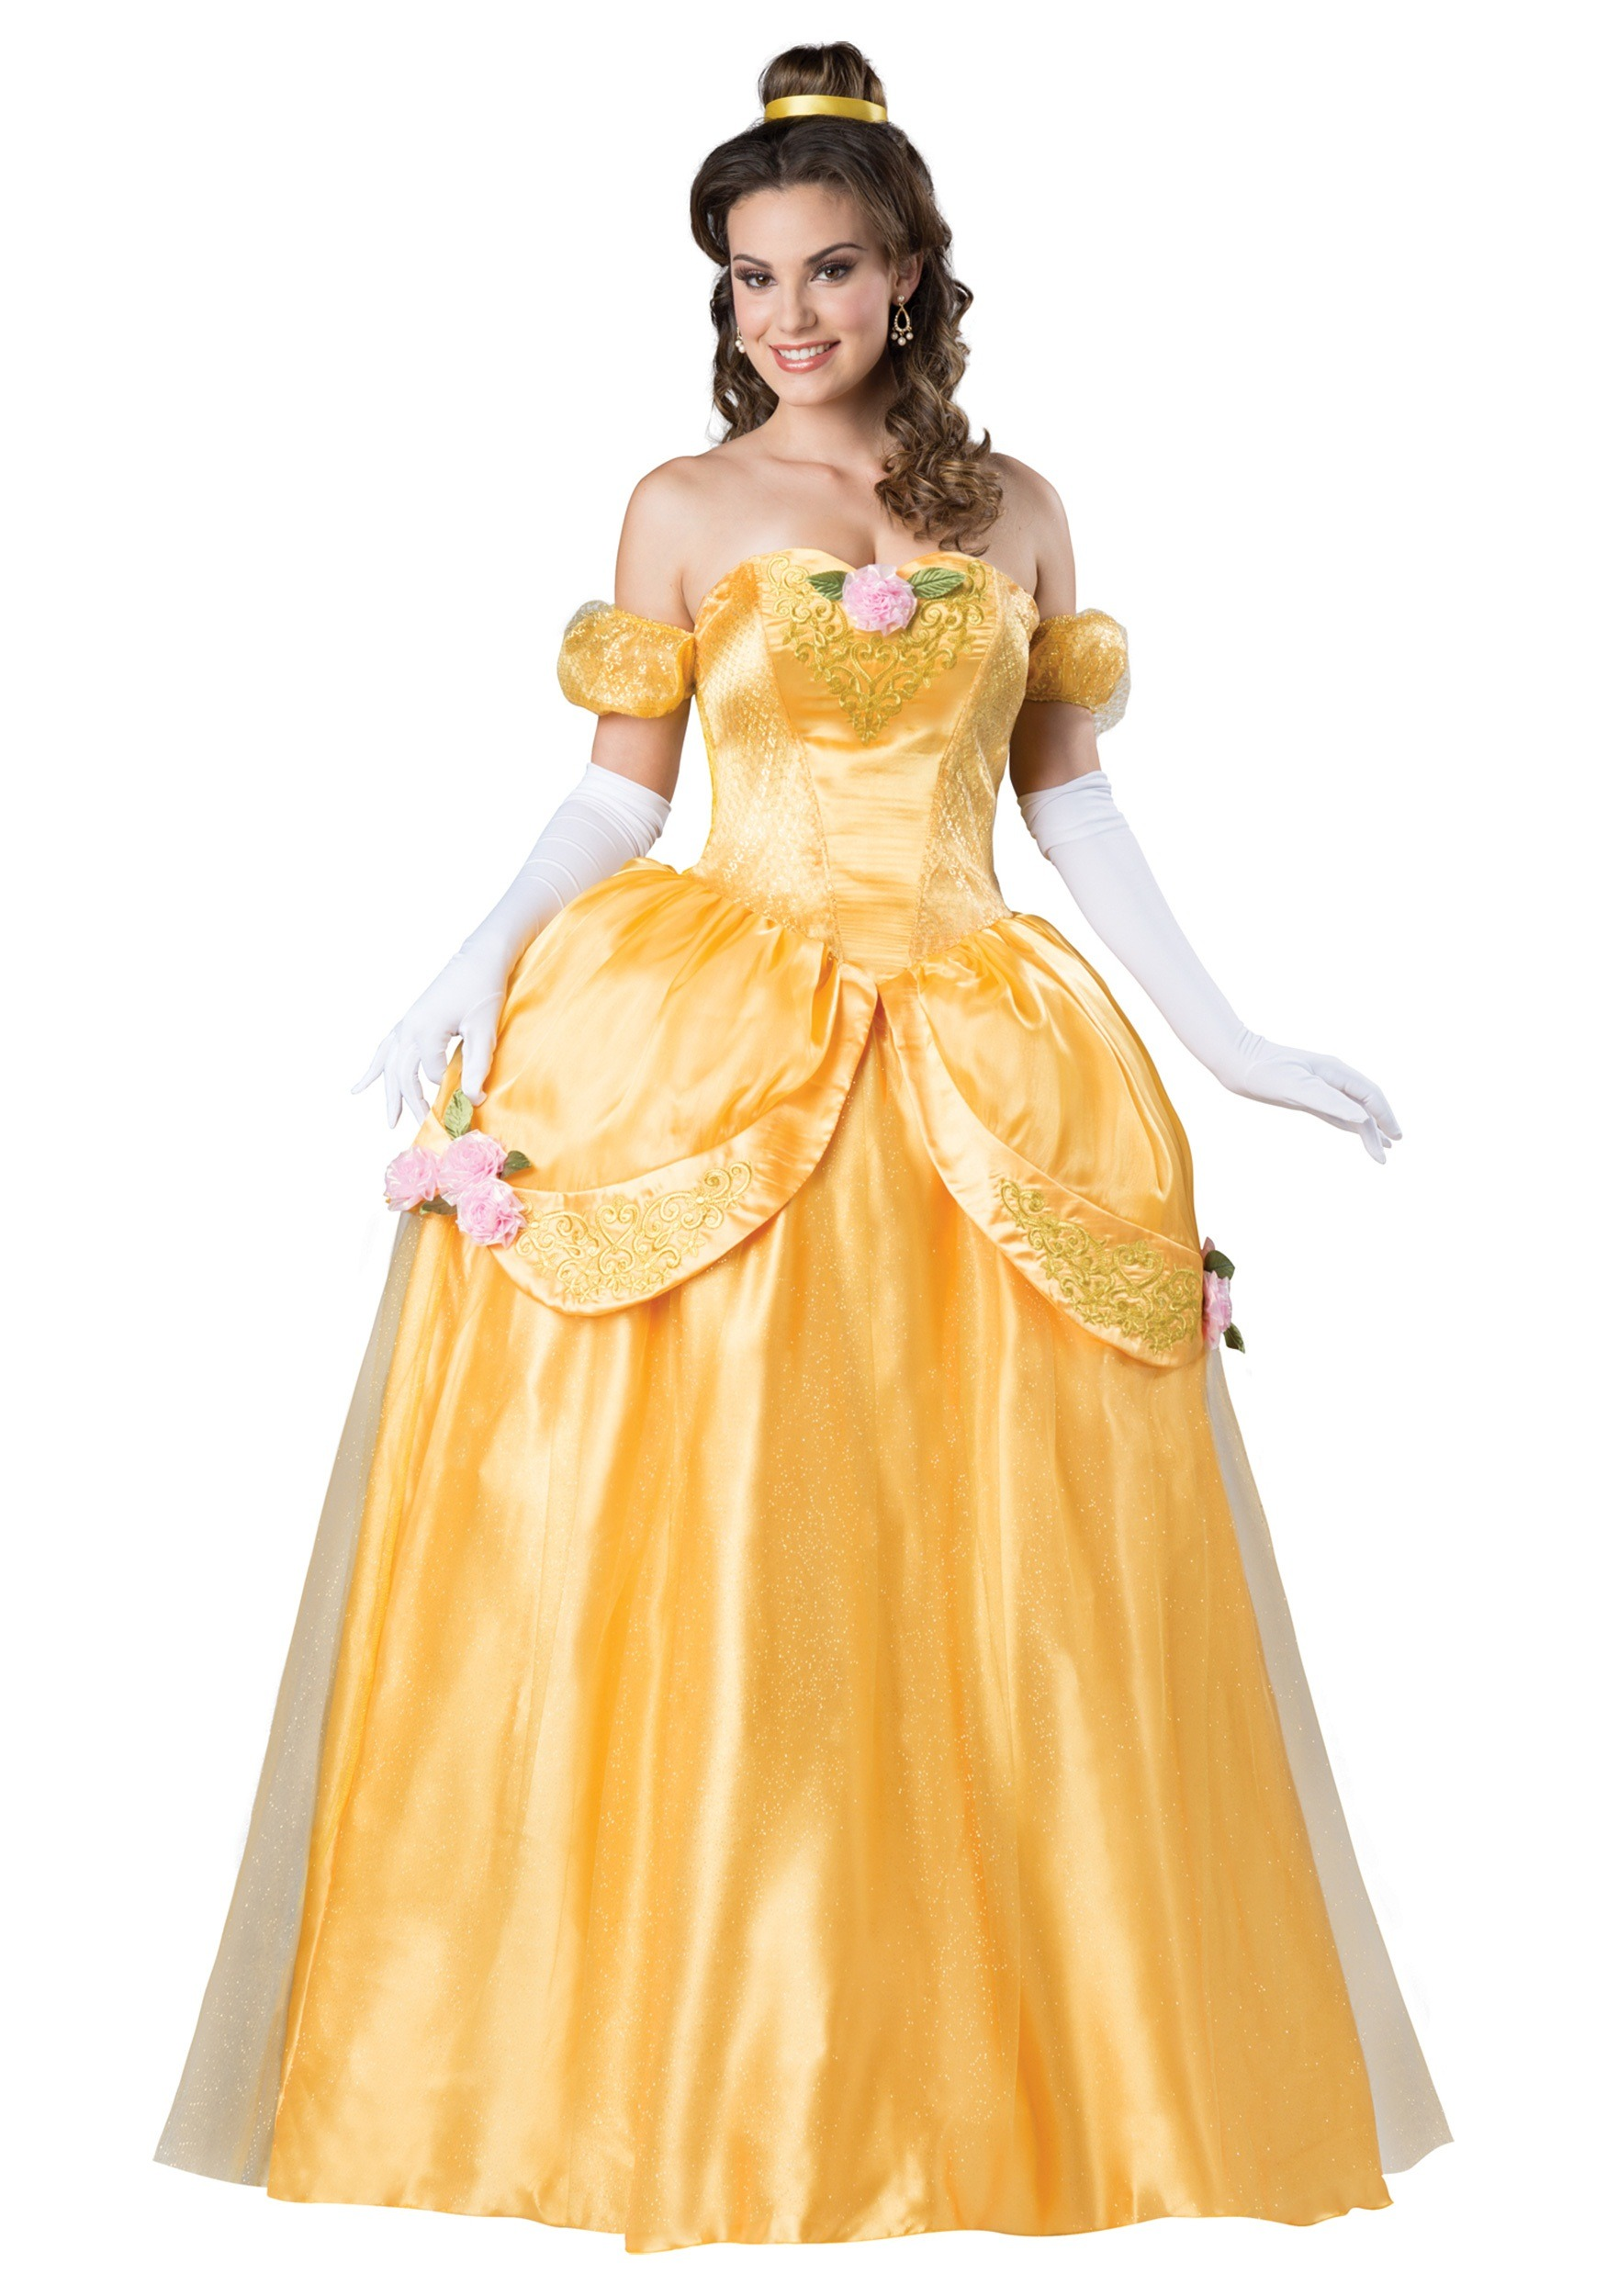 sc 1 st  Halloween Costumes : princess halloween costume adult  - Germanpascual.Com